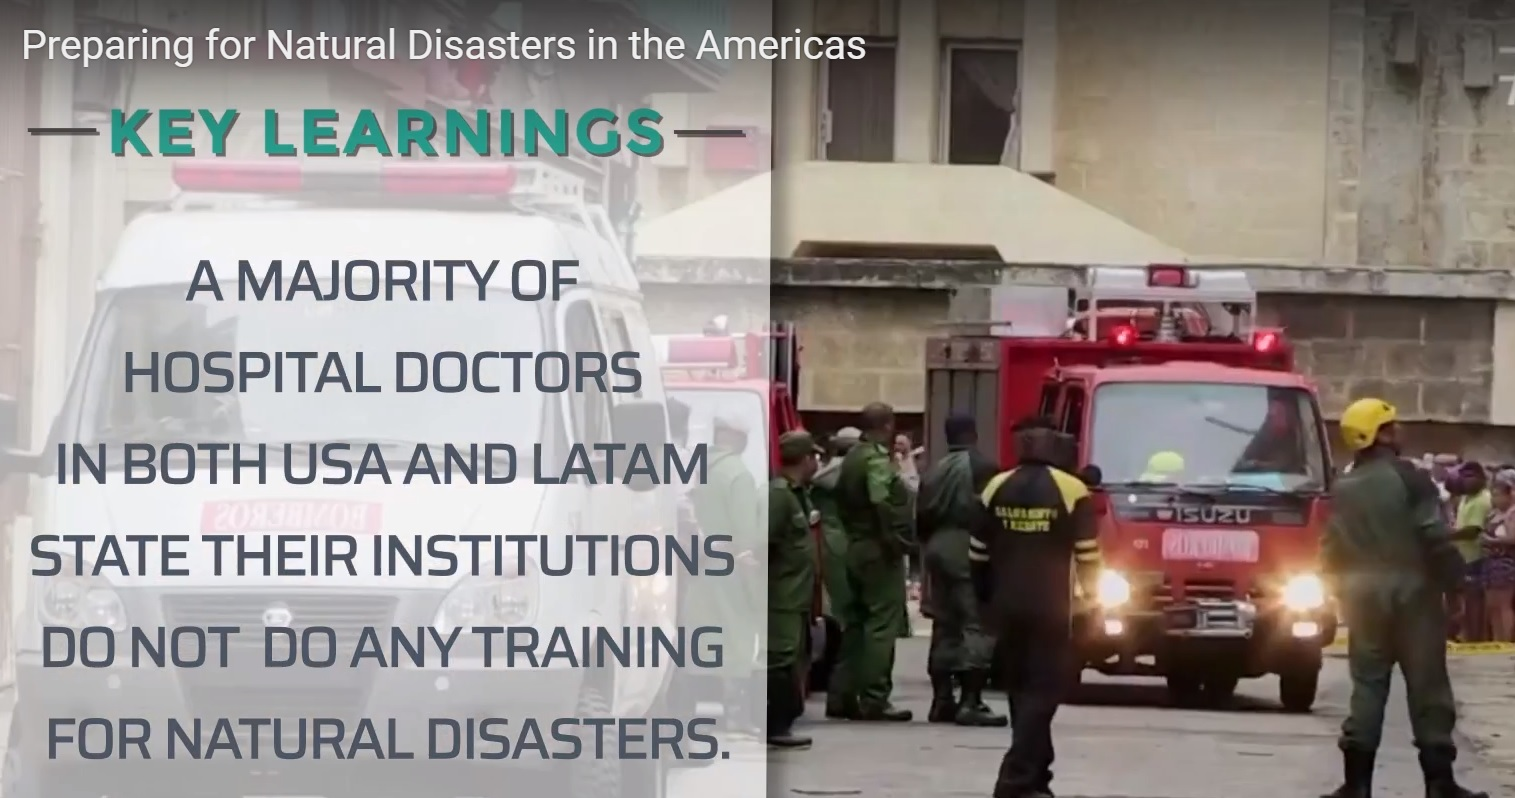 FINE releases large survey about preparedness for natural disasters in the region. See the video